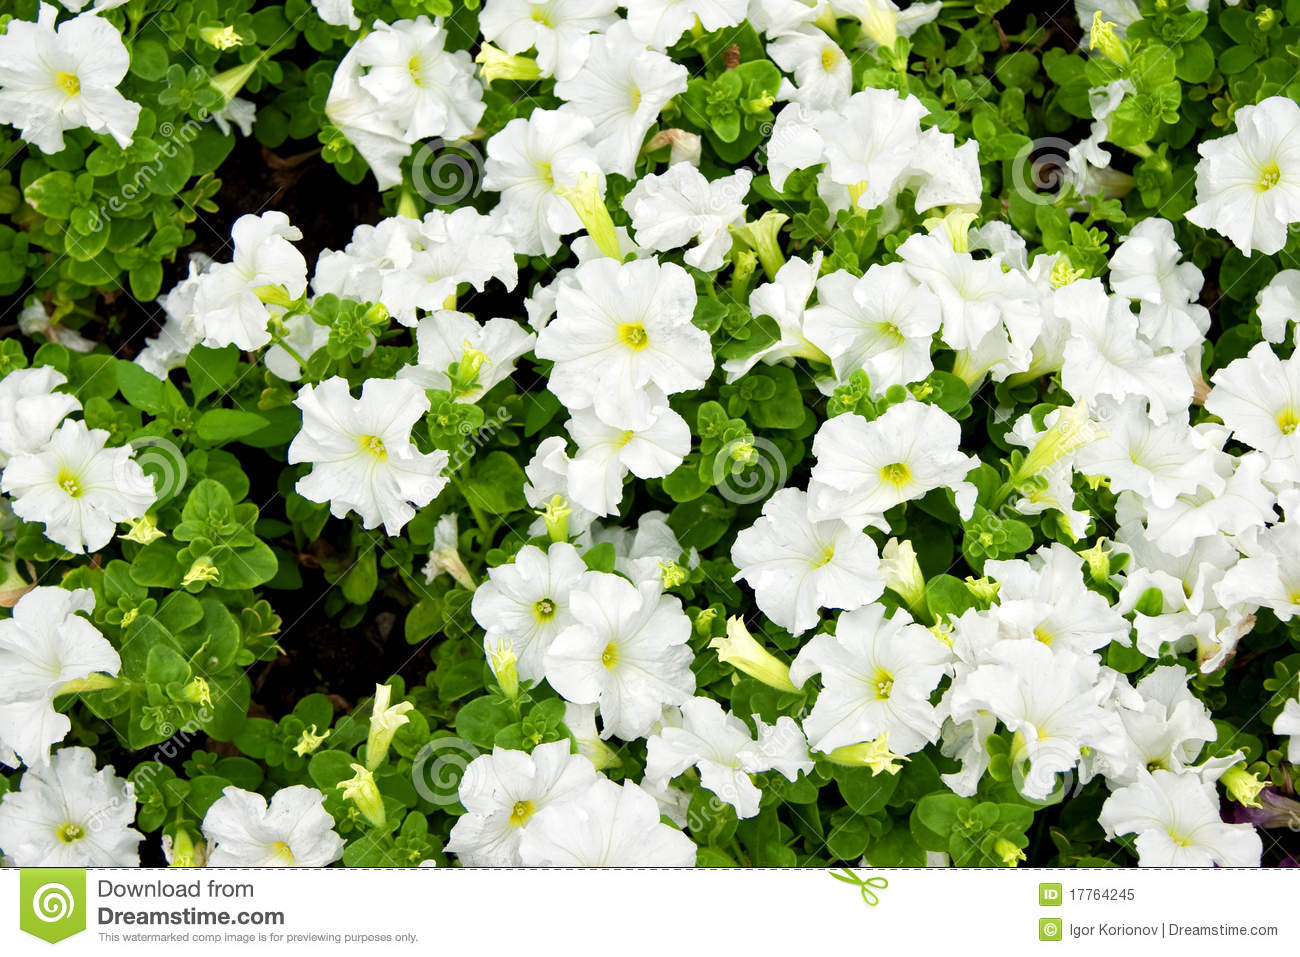 Petunia flowers white with green leaves stock image image of petunia flowers white with green leaves mightylinksfo